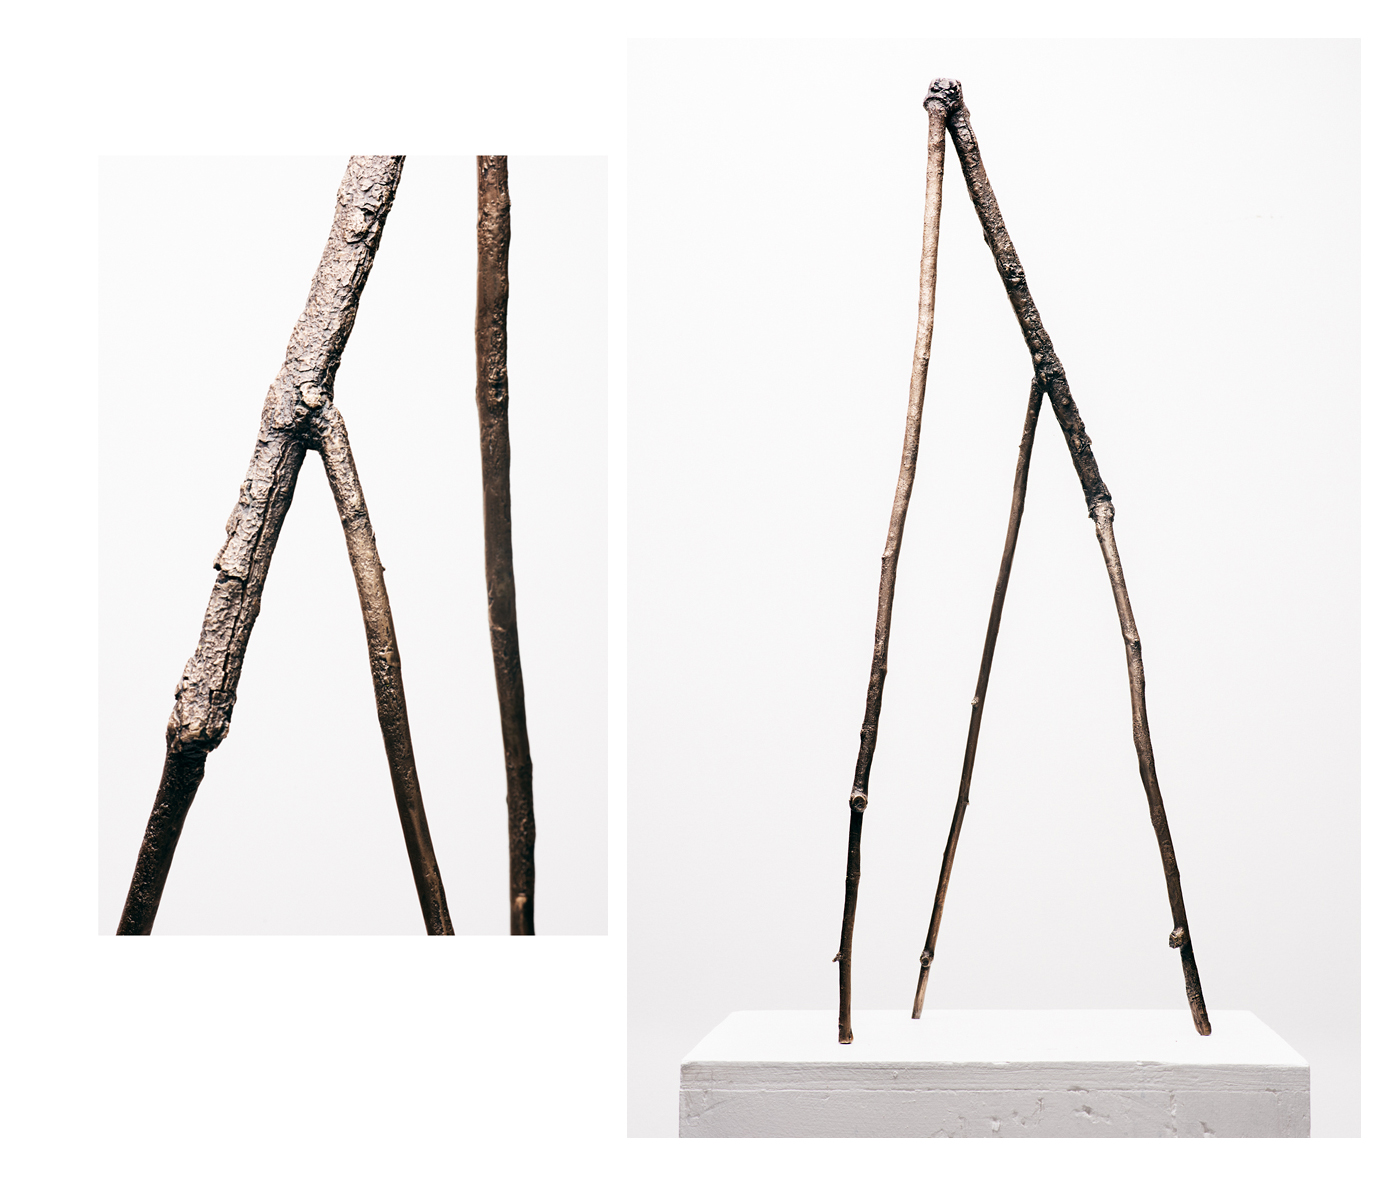 Stick 08, 2019, Bronze with base coat and bees wax, 10x9x27 inches.